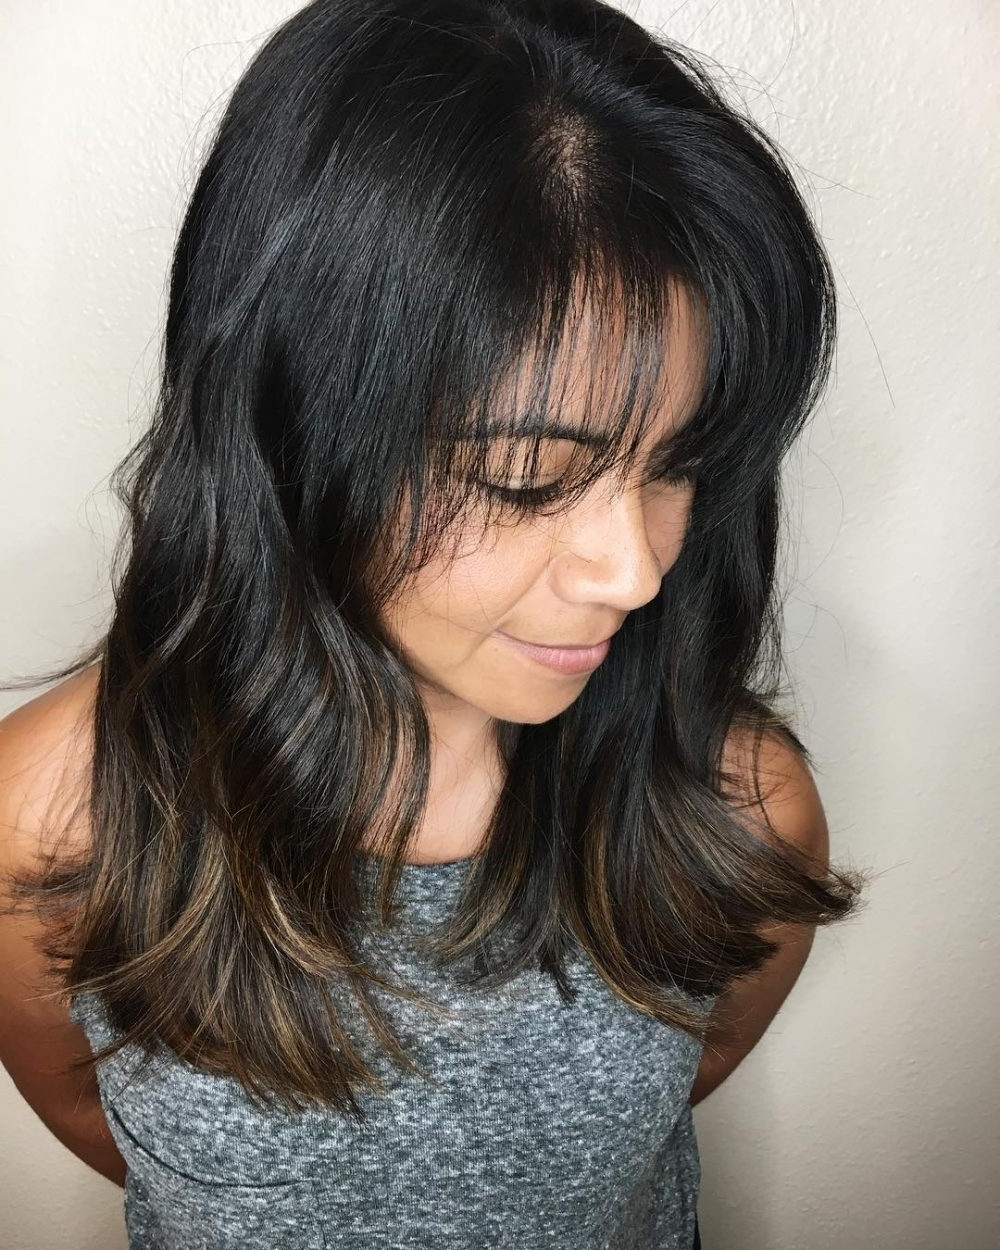 30 Best Hairstyles For Thick Hair & Trending Thick Haircuts Medium Length Hairstyles For Thick Hair With Fringe